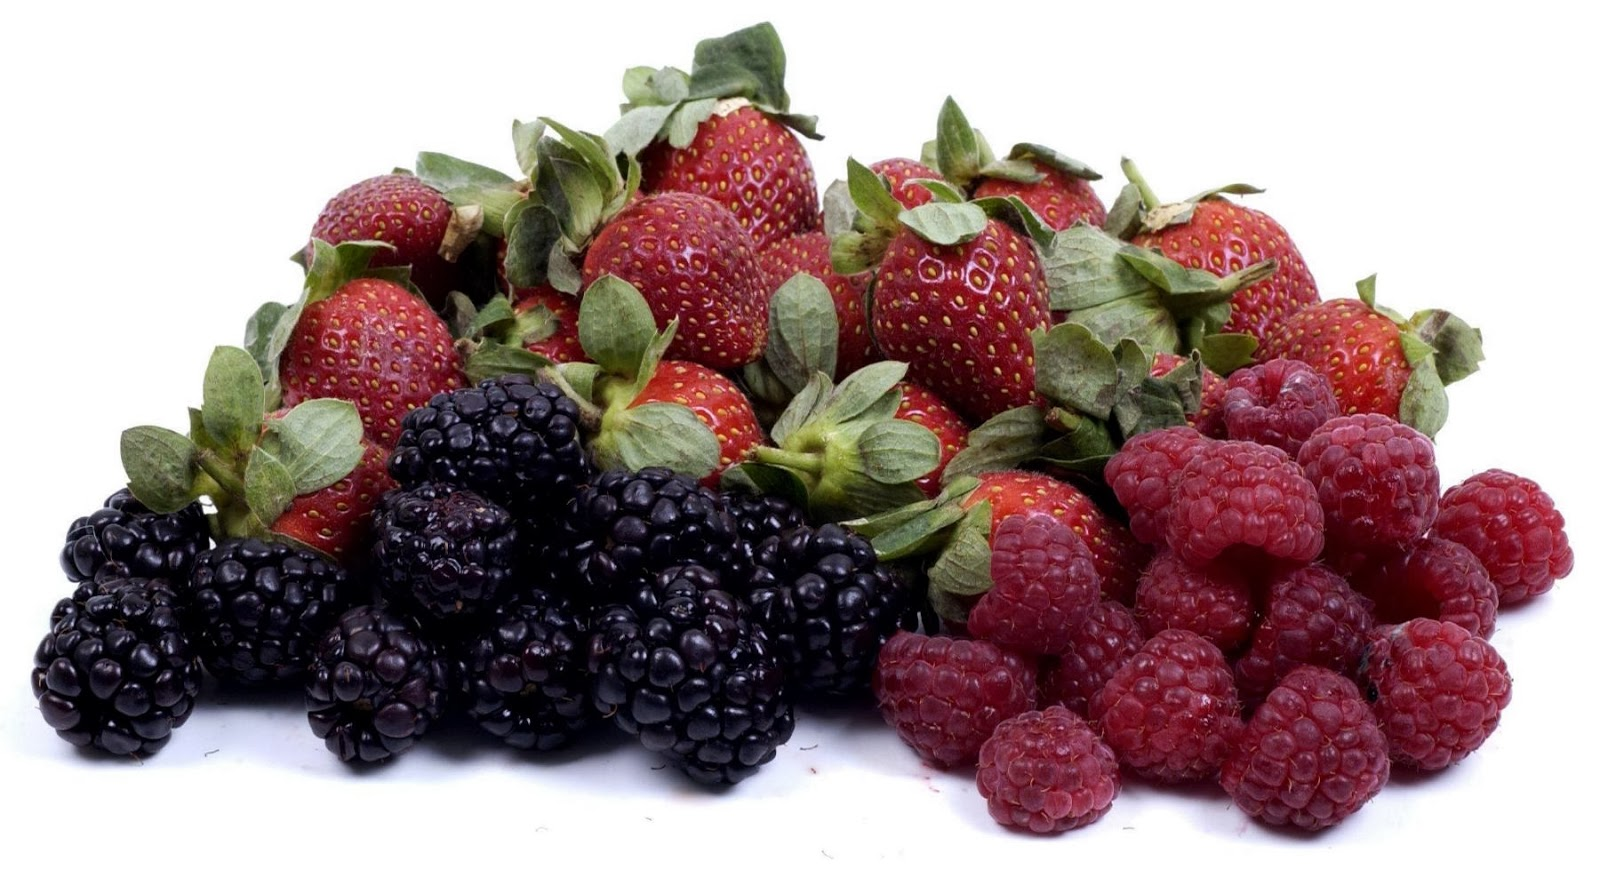 How to kill and maim people legally! FRUIT+BERRIES+jpeg